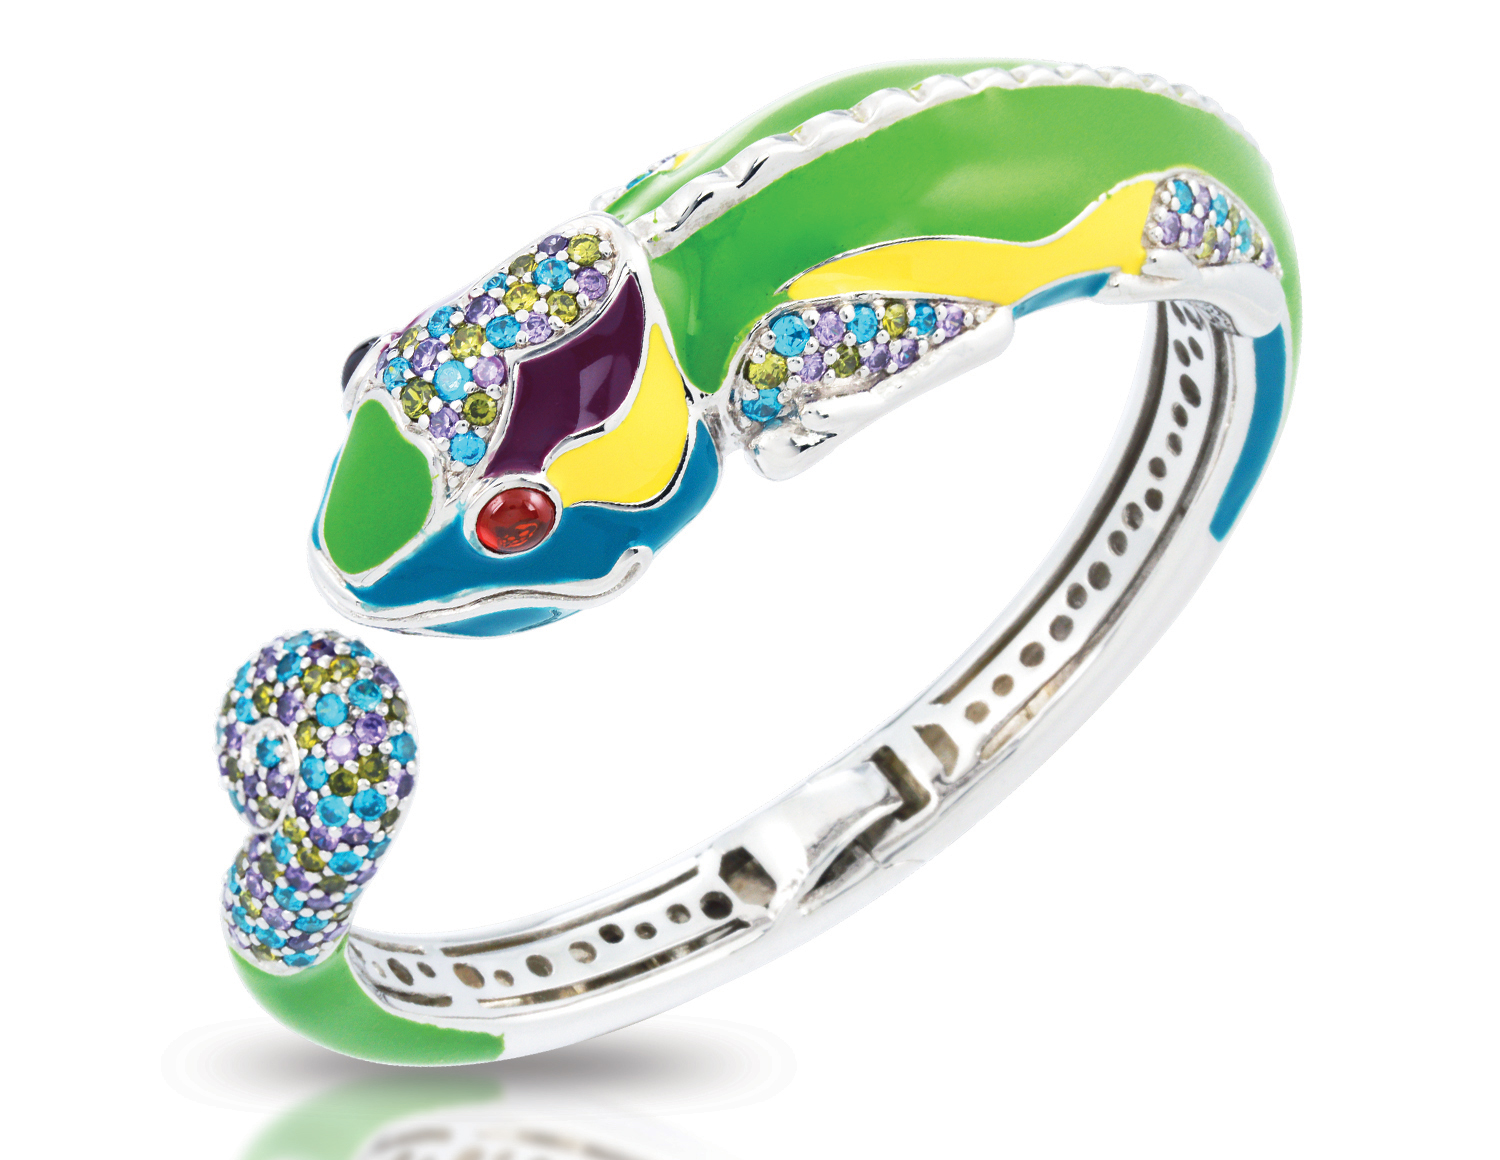 Belle Étoile chameleon bangle | JCK On Your Market